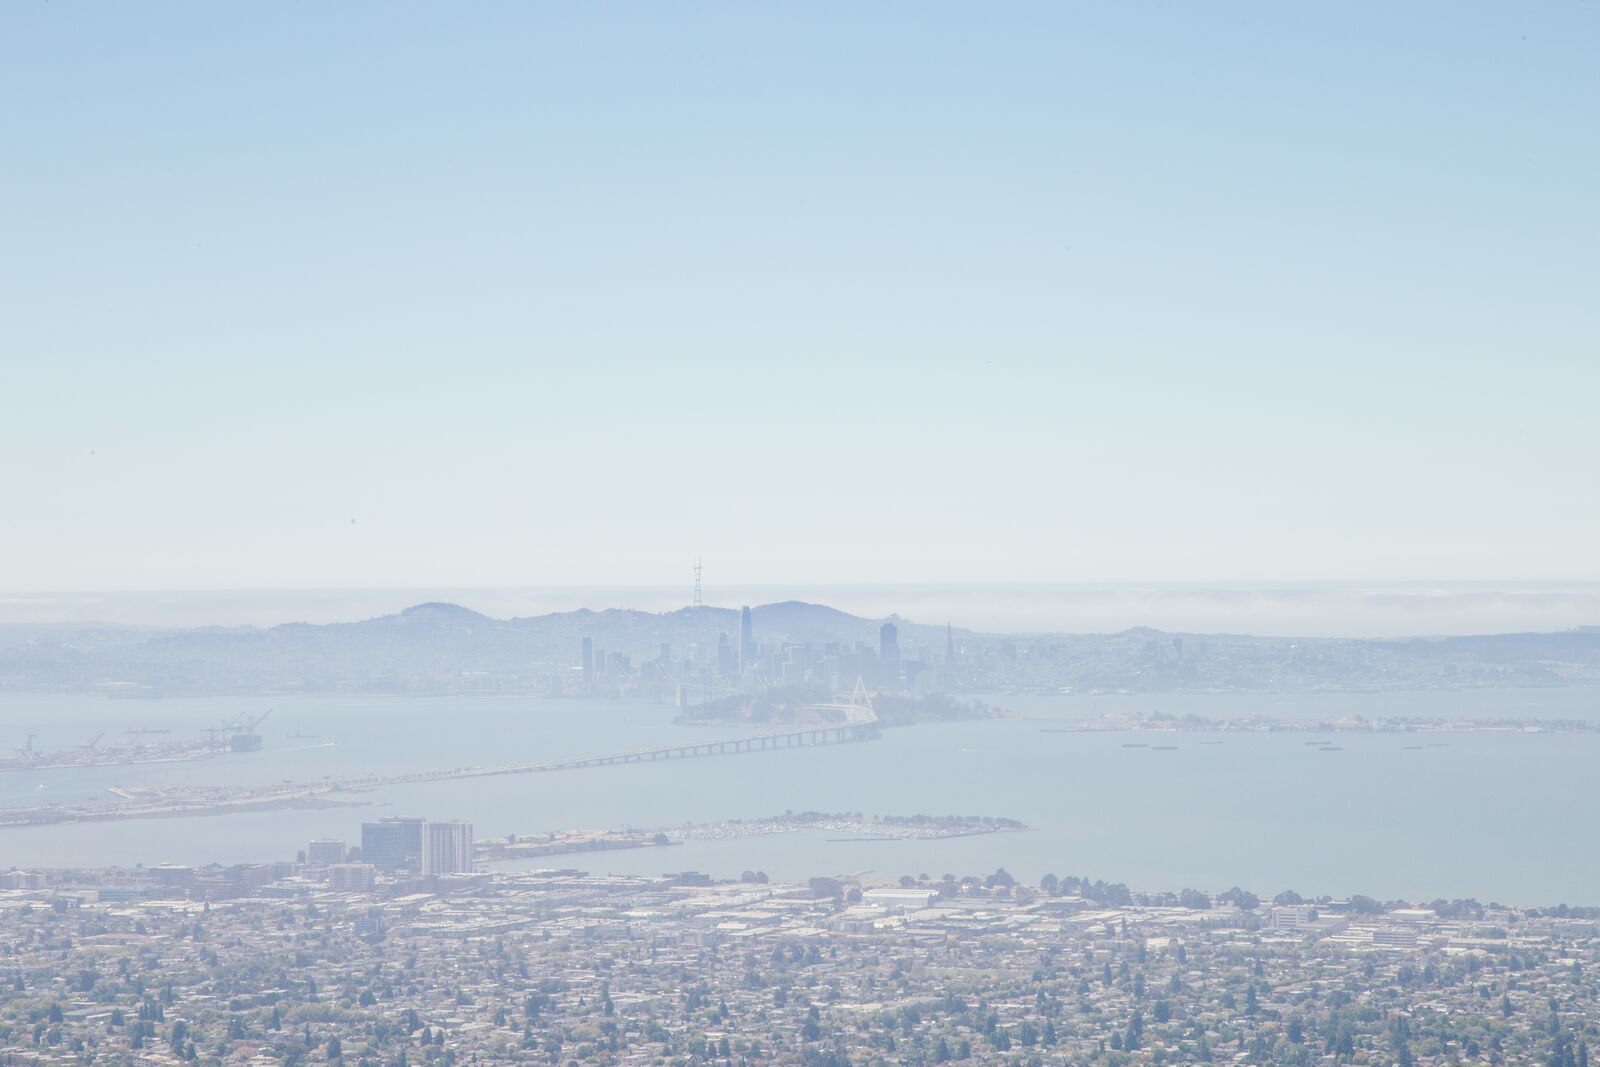 View of a the San Francisco Bay from the Berkeley Hills on August 10.